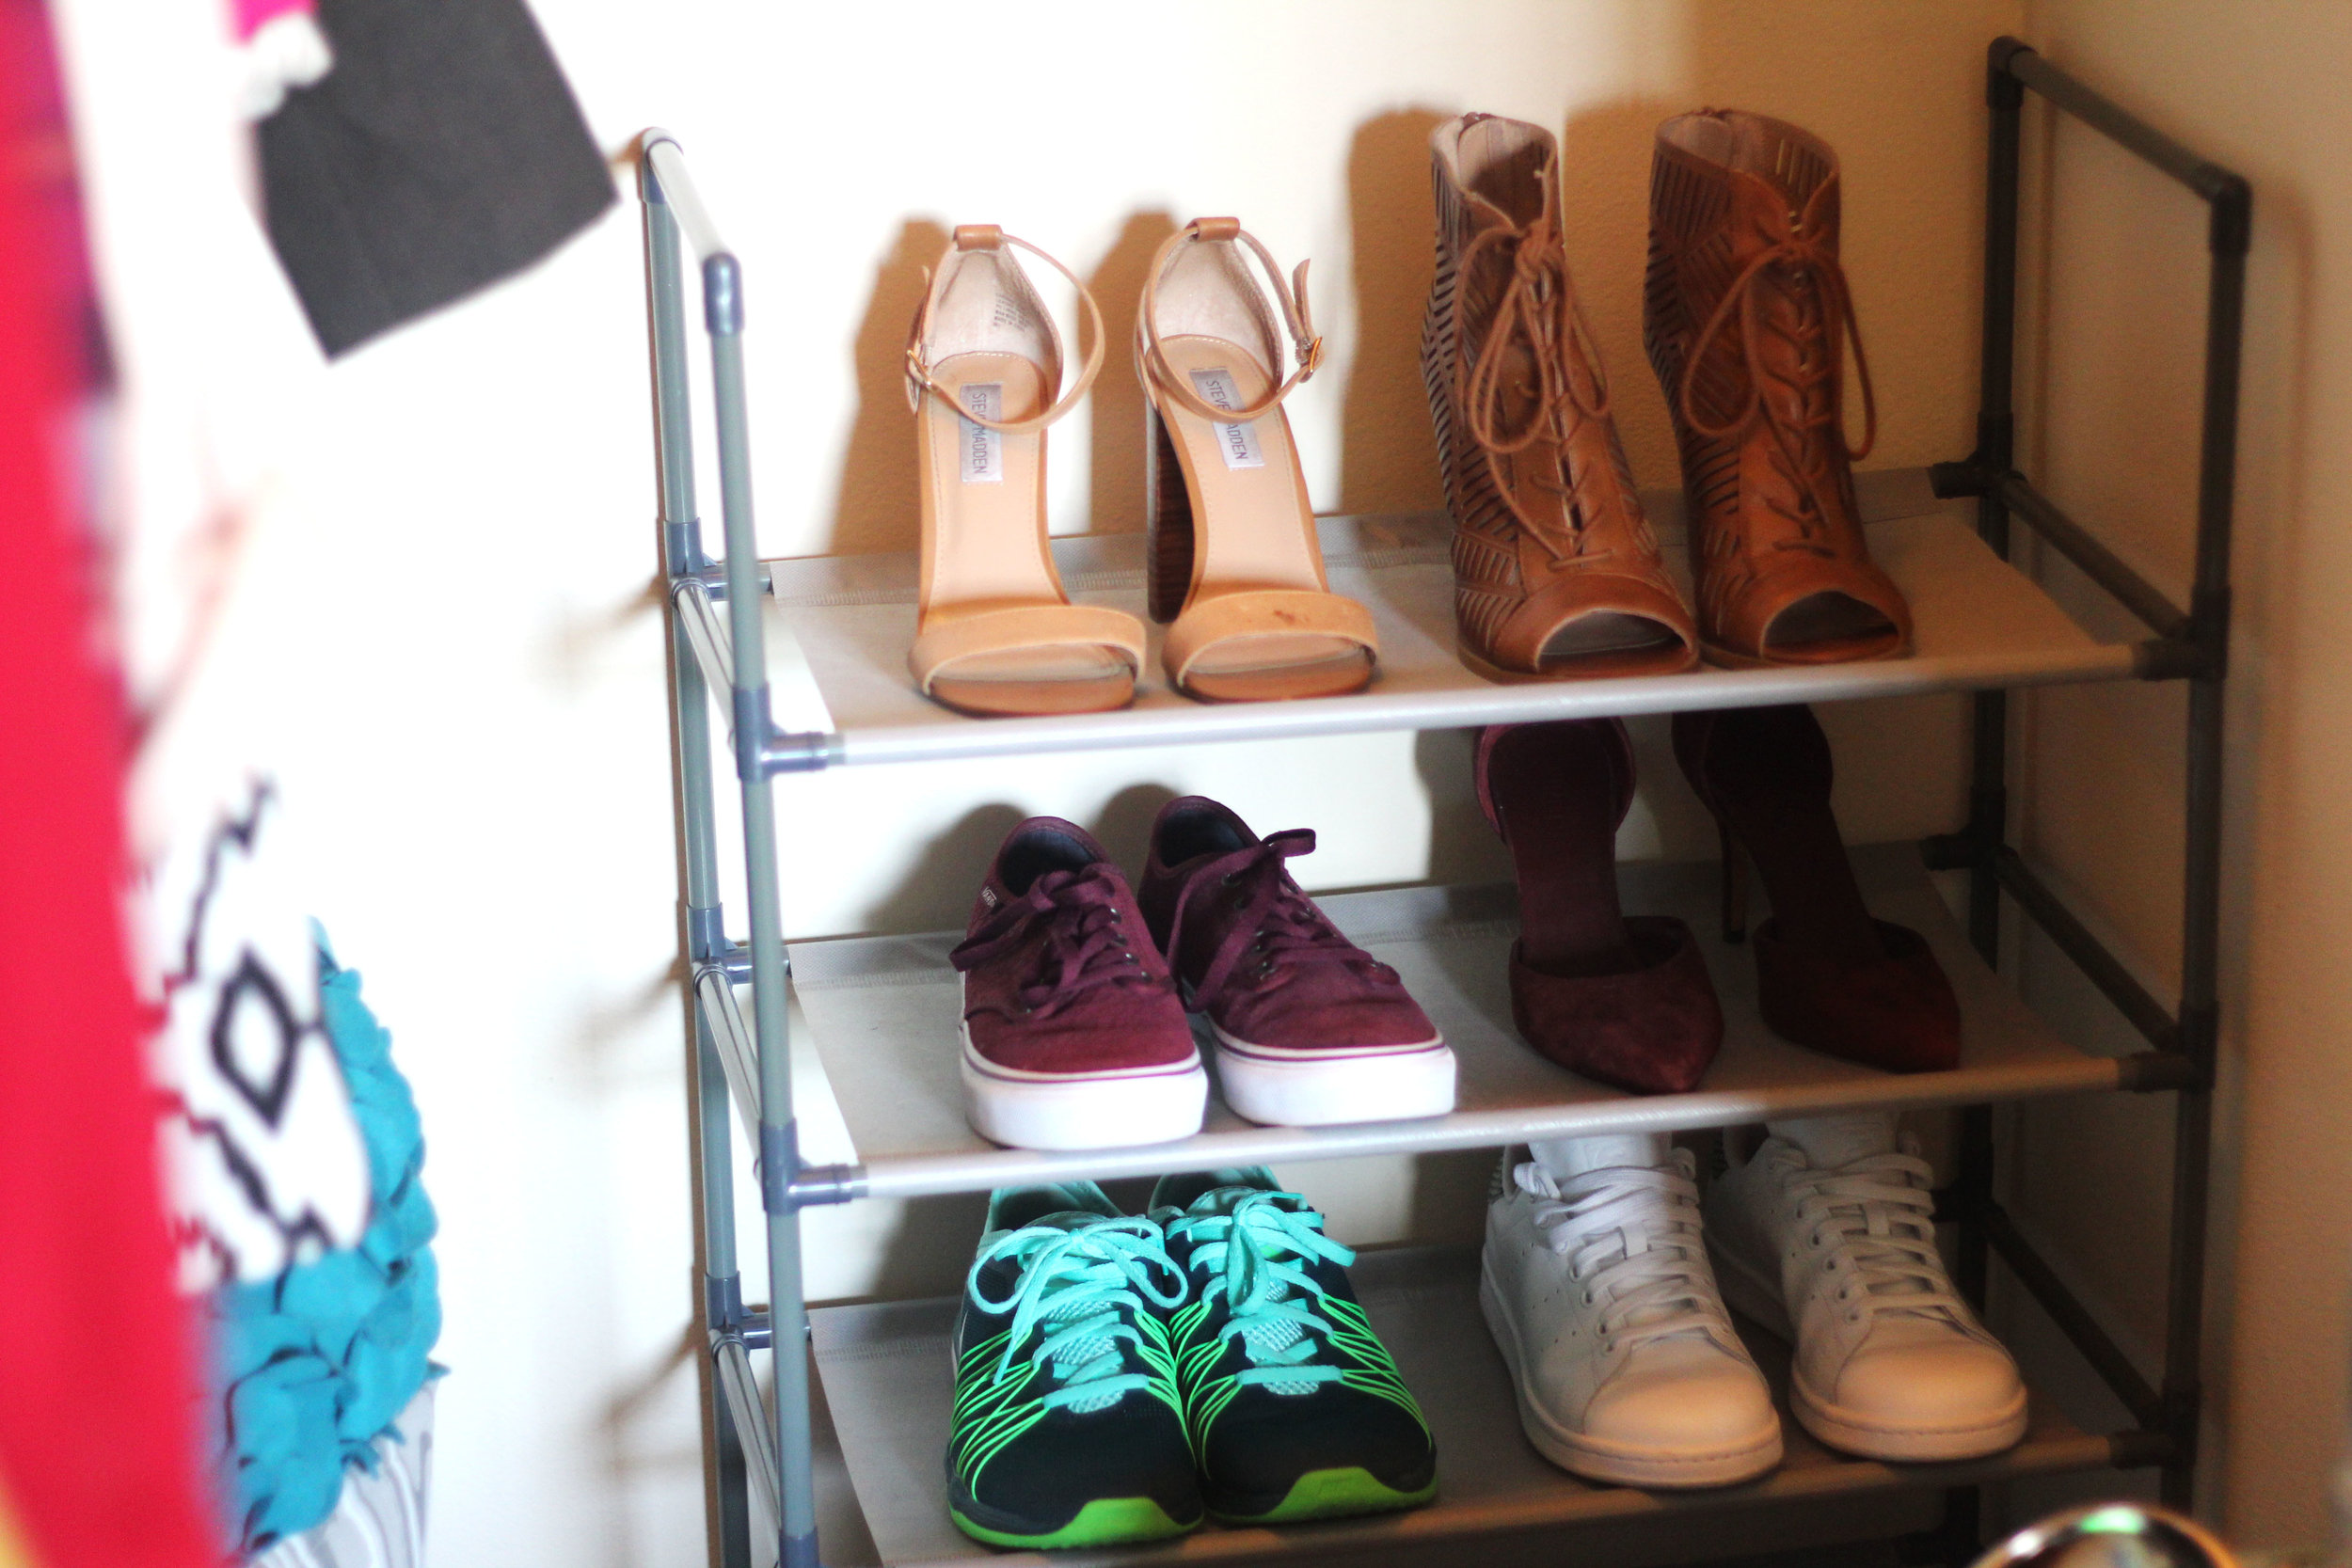 My favorite shoes that get worn the most on a  5-tier shoe rack ($17.99)